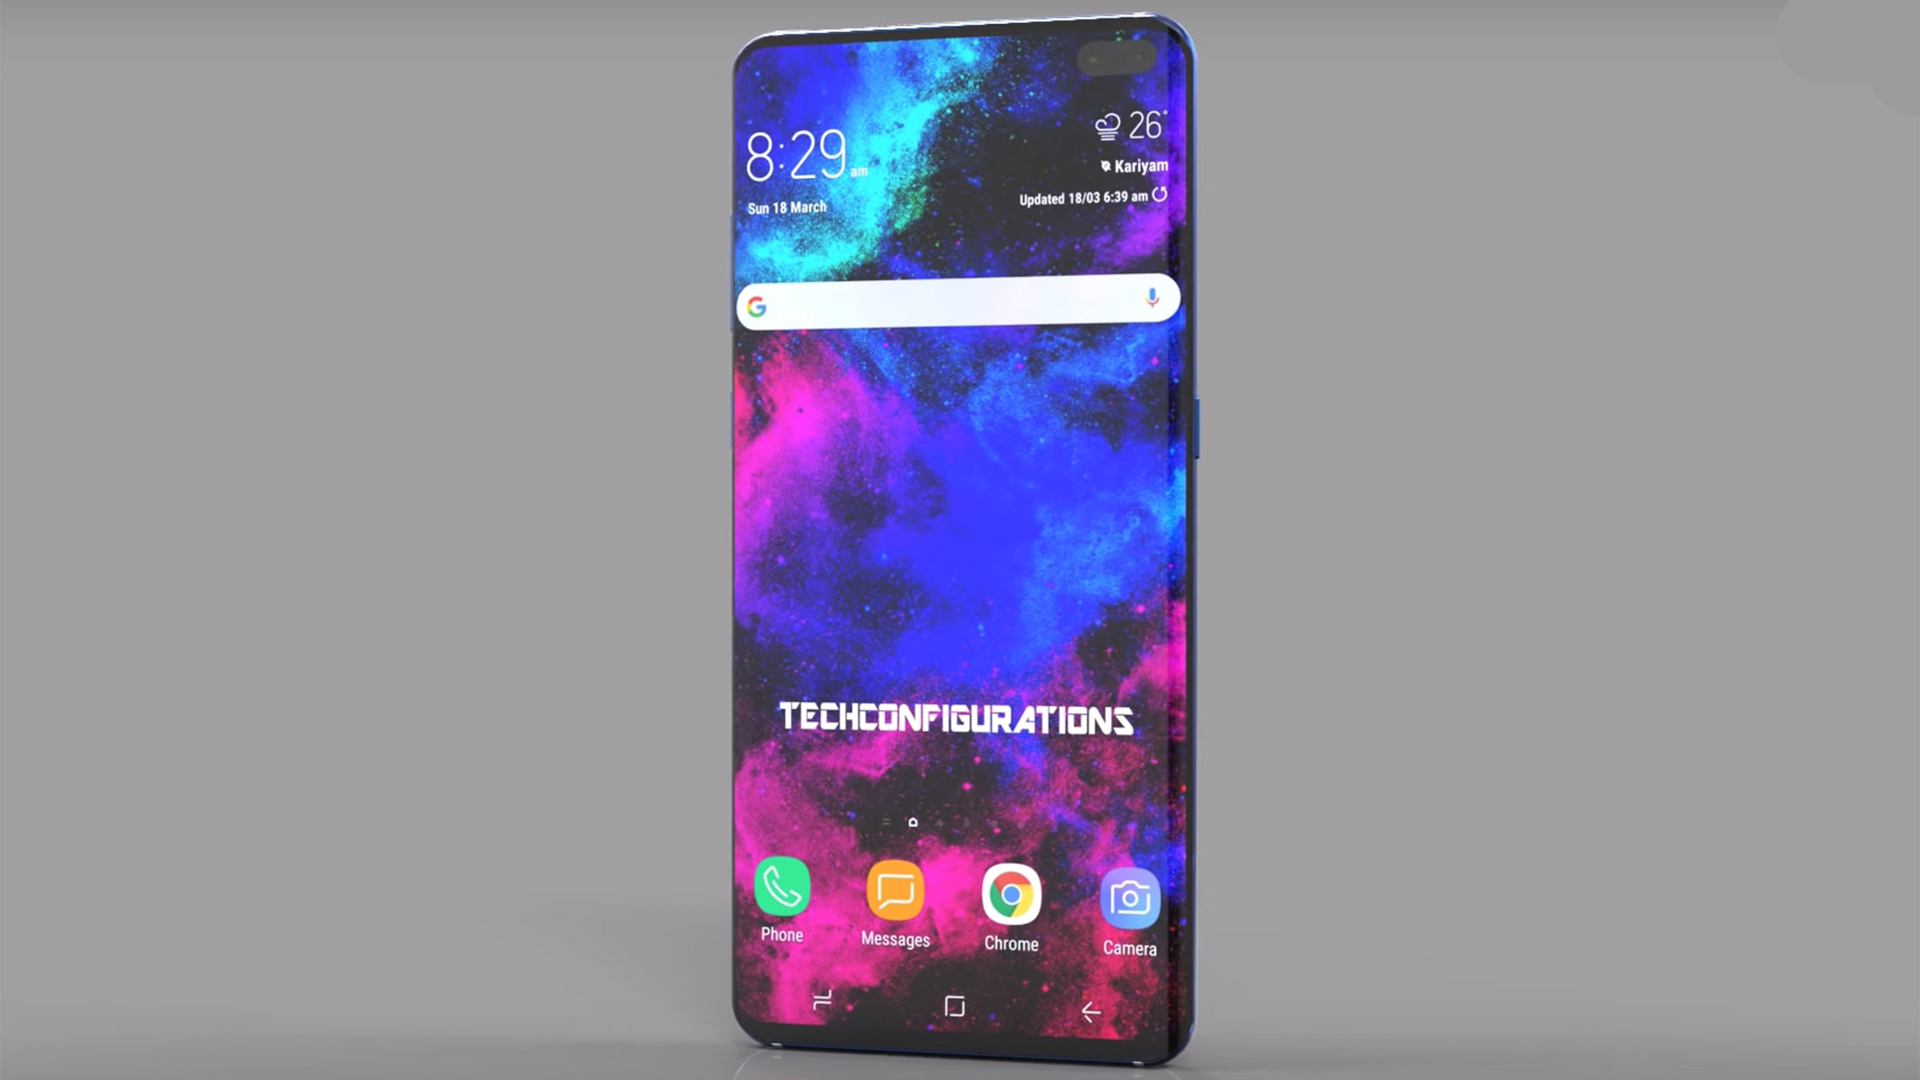 New Samsung Galaxy S10 Plus Video Shows Off Dual Front Cameras Quad Rear Snappers And More T3